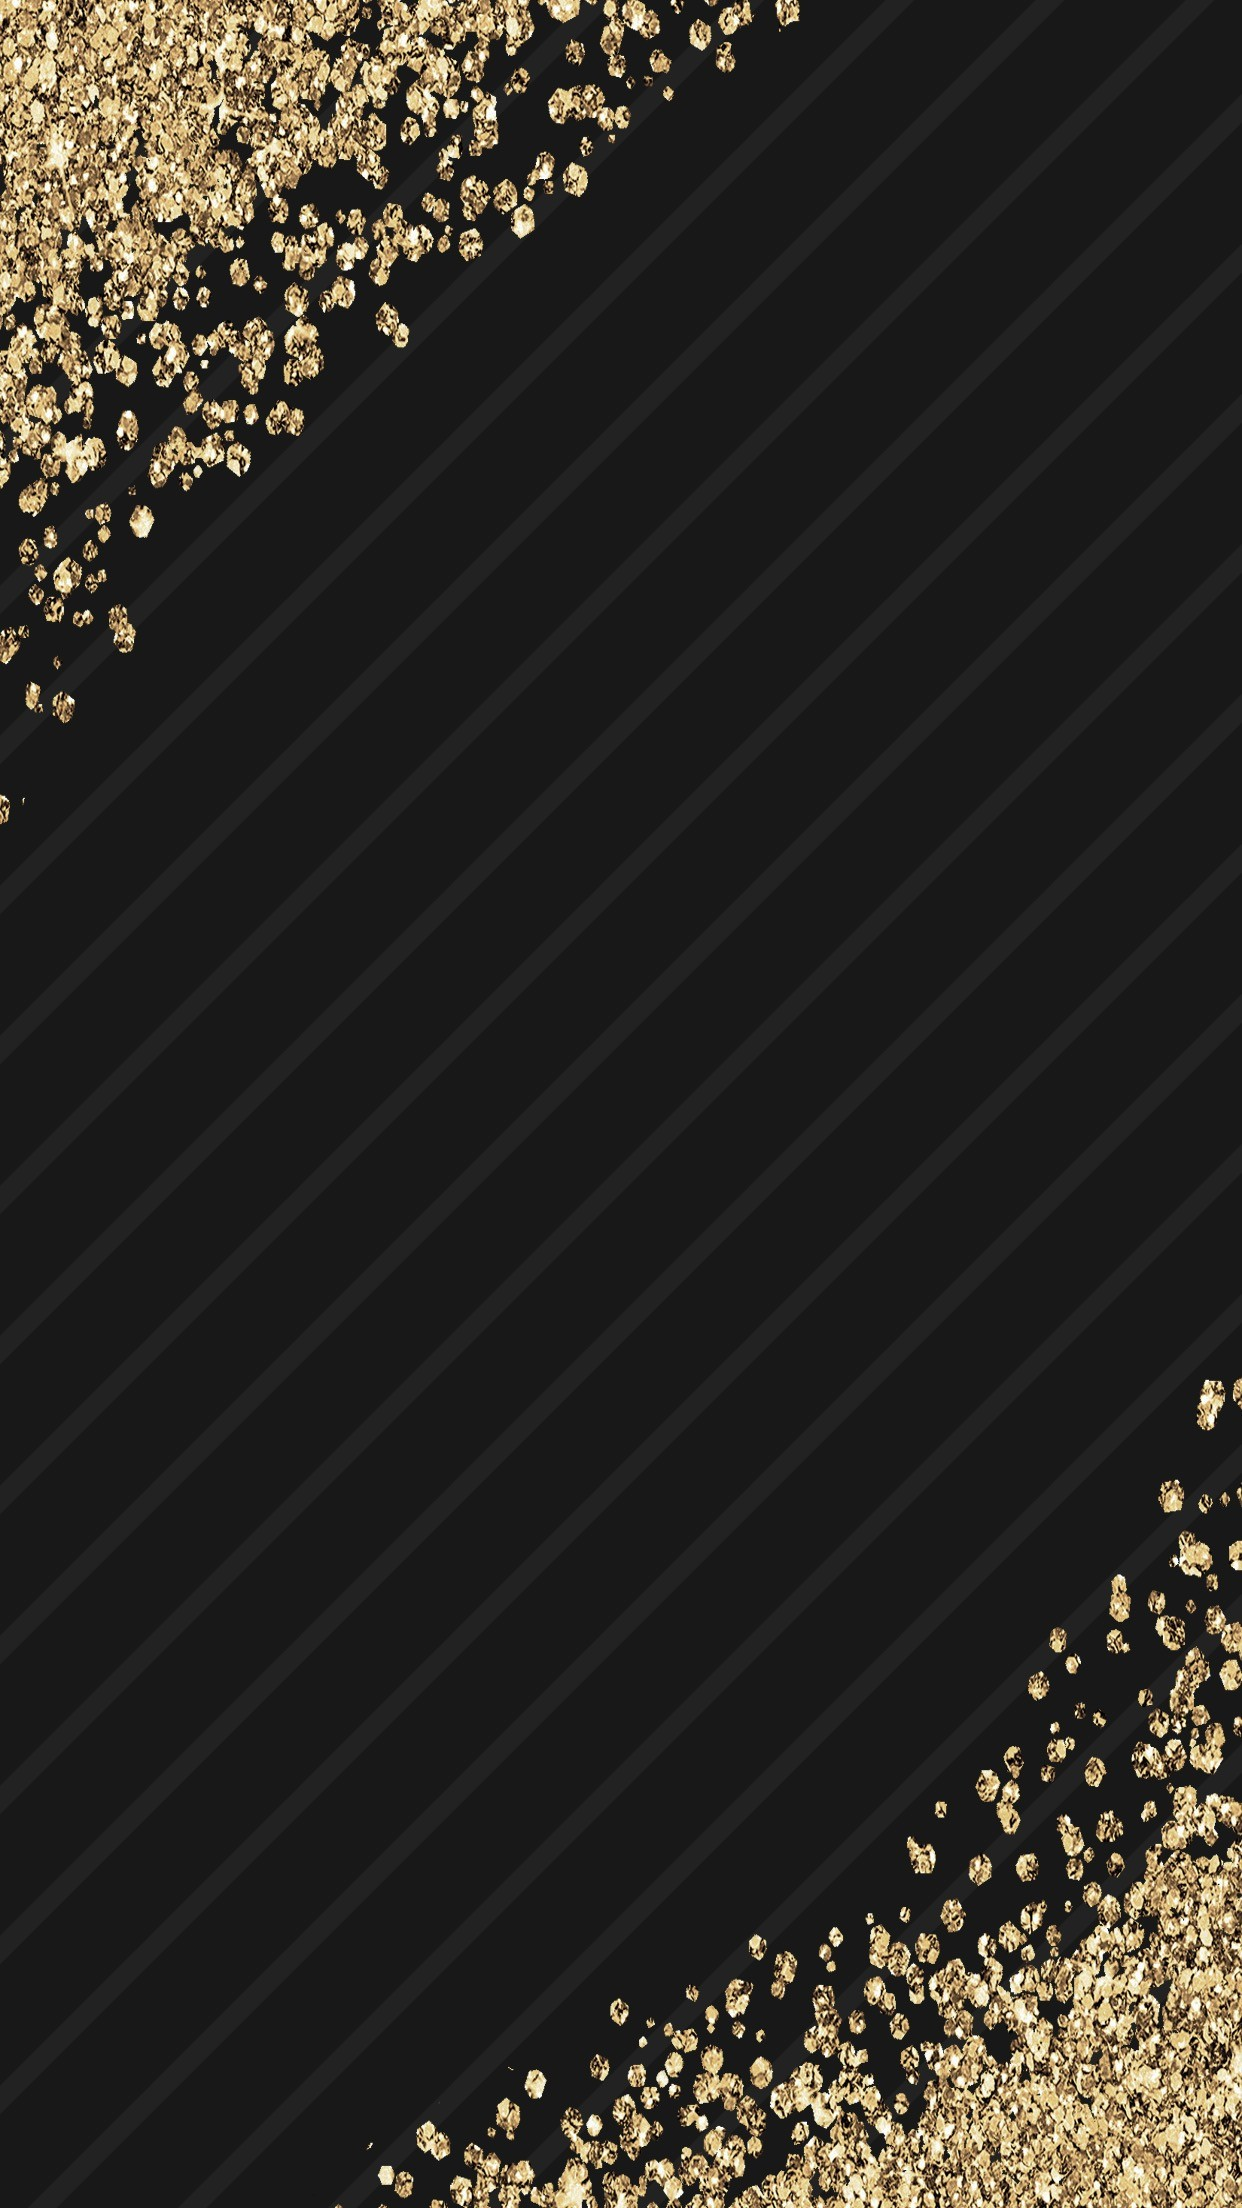 1920x1200 Trendy Black And Gold Bedroom Wallpaper In